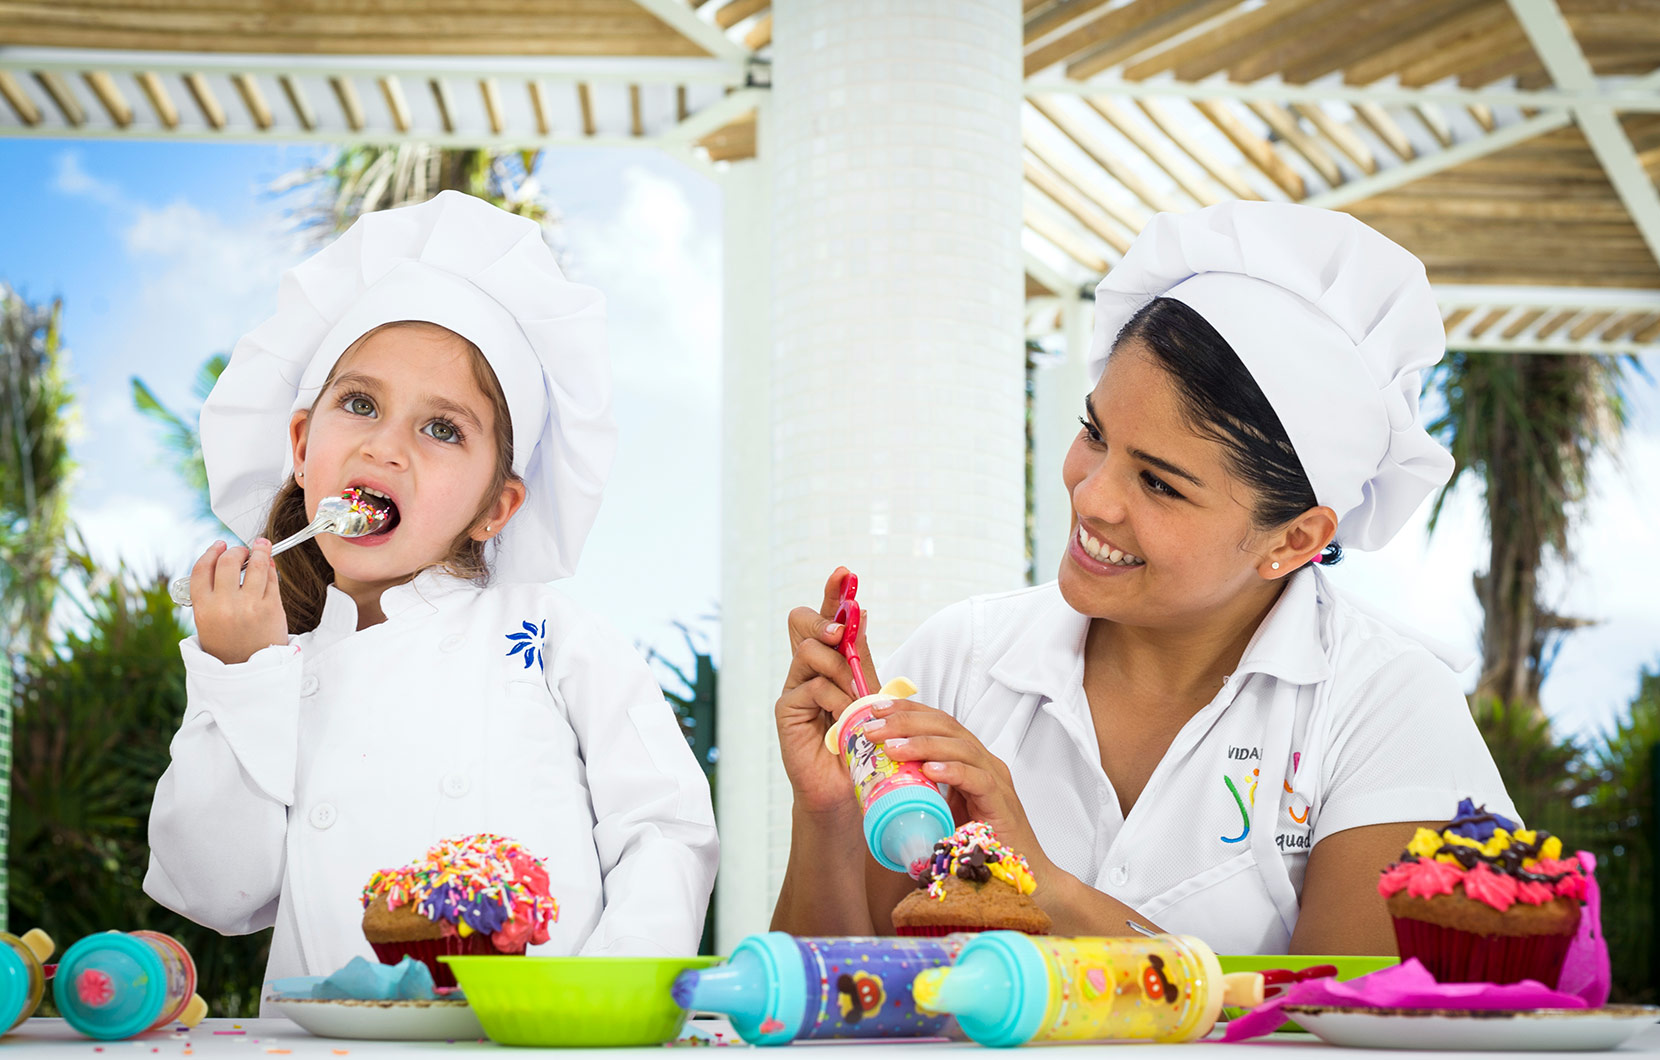 Kids can try their hand at being a pastry chef with the Top Chef Jr. Program.